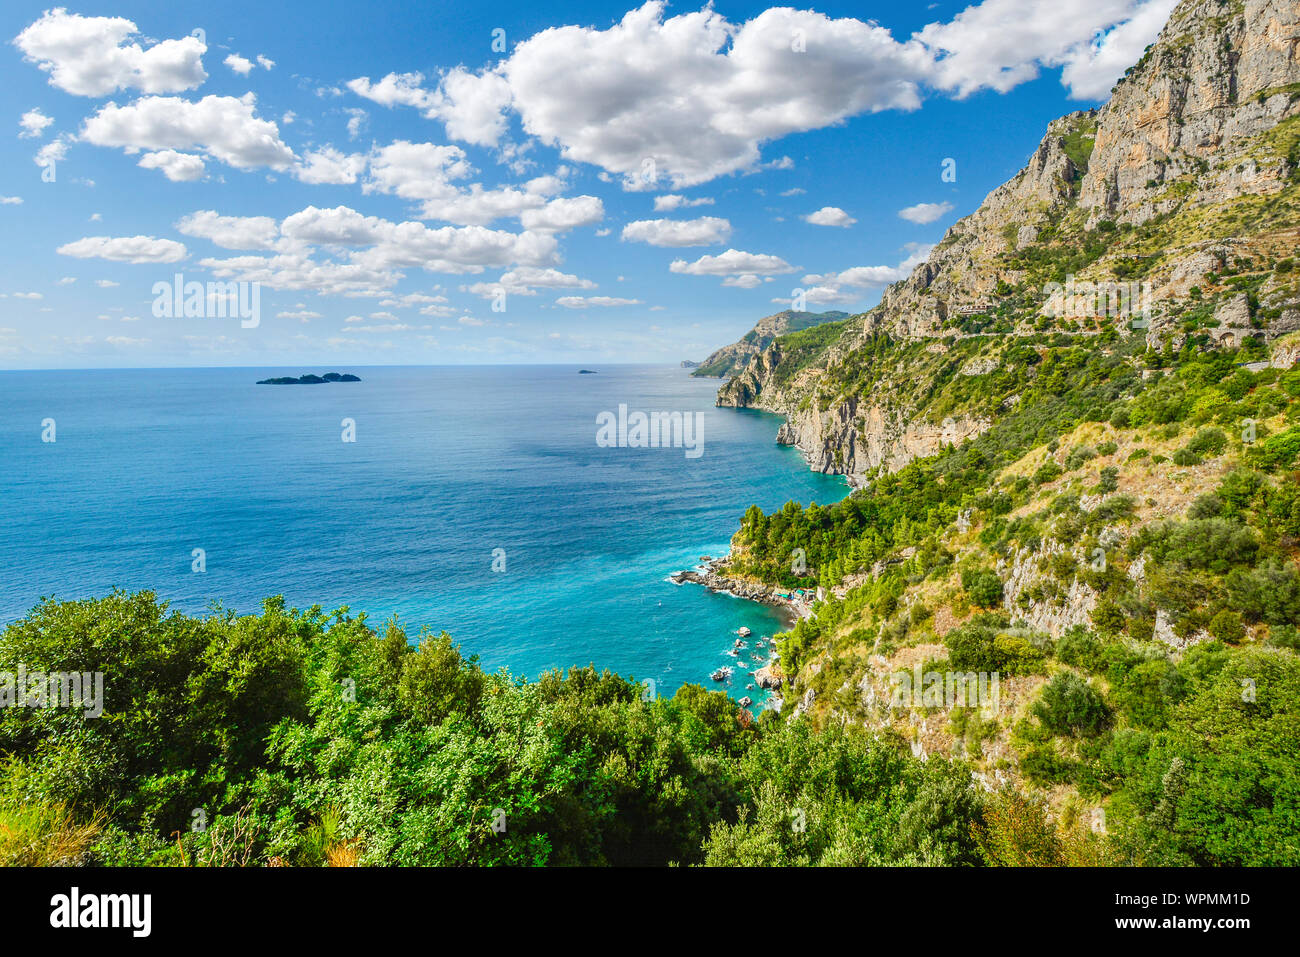 A view from the famous Amalfi Coast drive road towards the cliffs, mountains, coastline, beaches and Mediterranean Sea near the town of Sorrento Italy Stock Photo